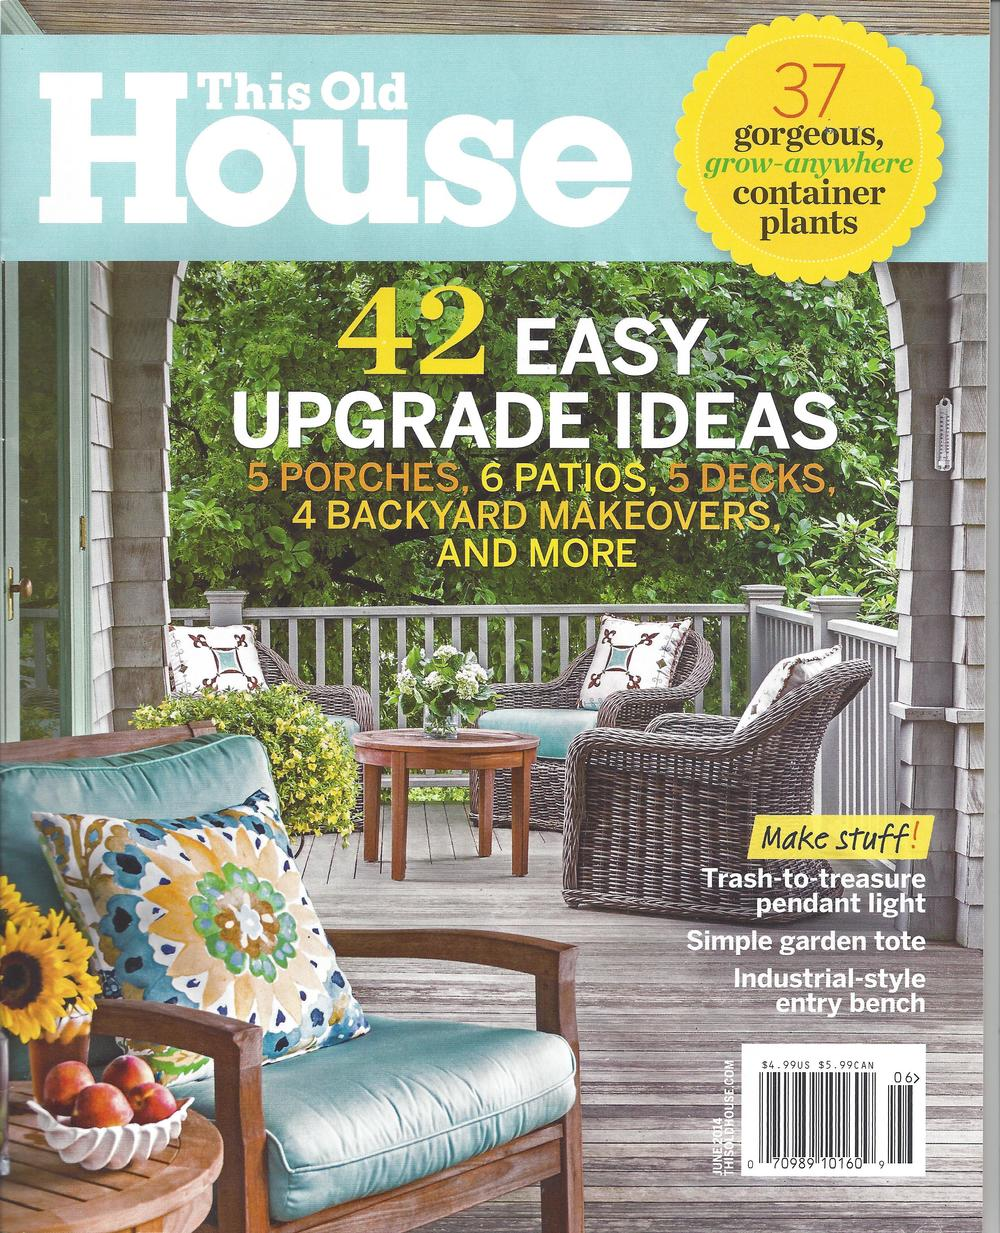 June 2014 Advertorial: Sherwin Williams